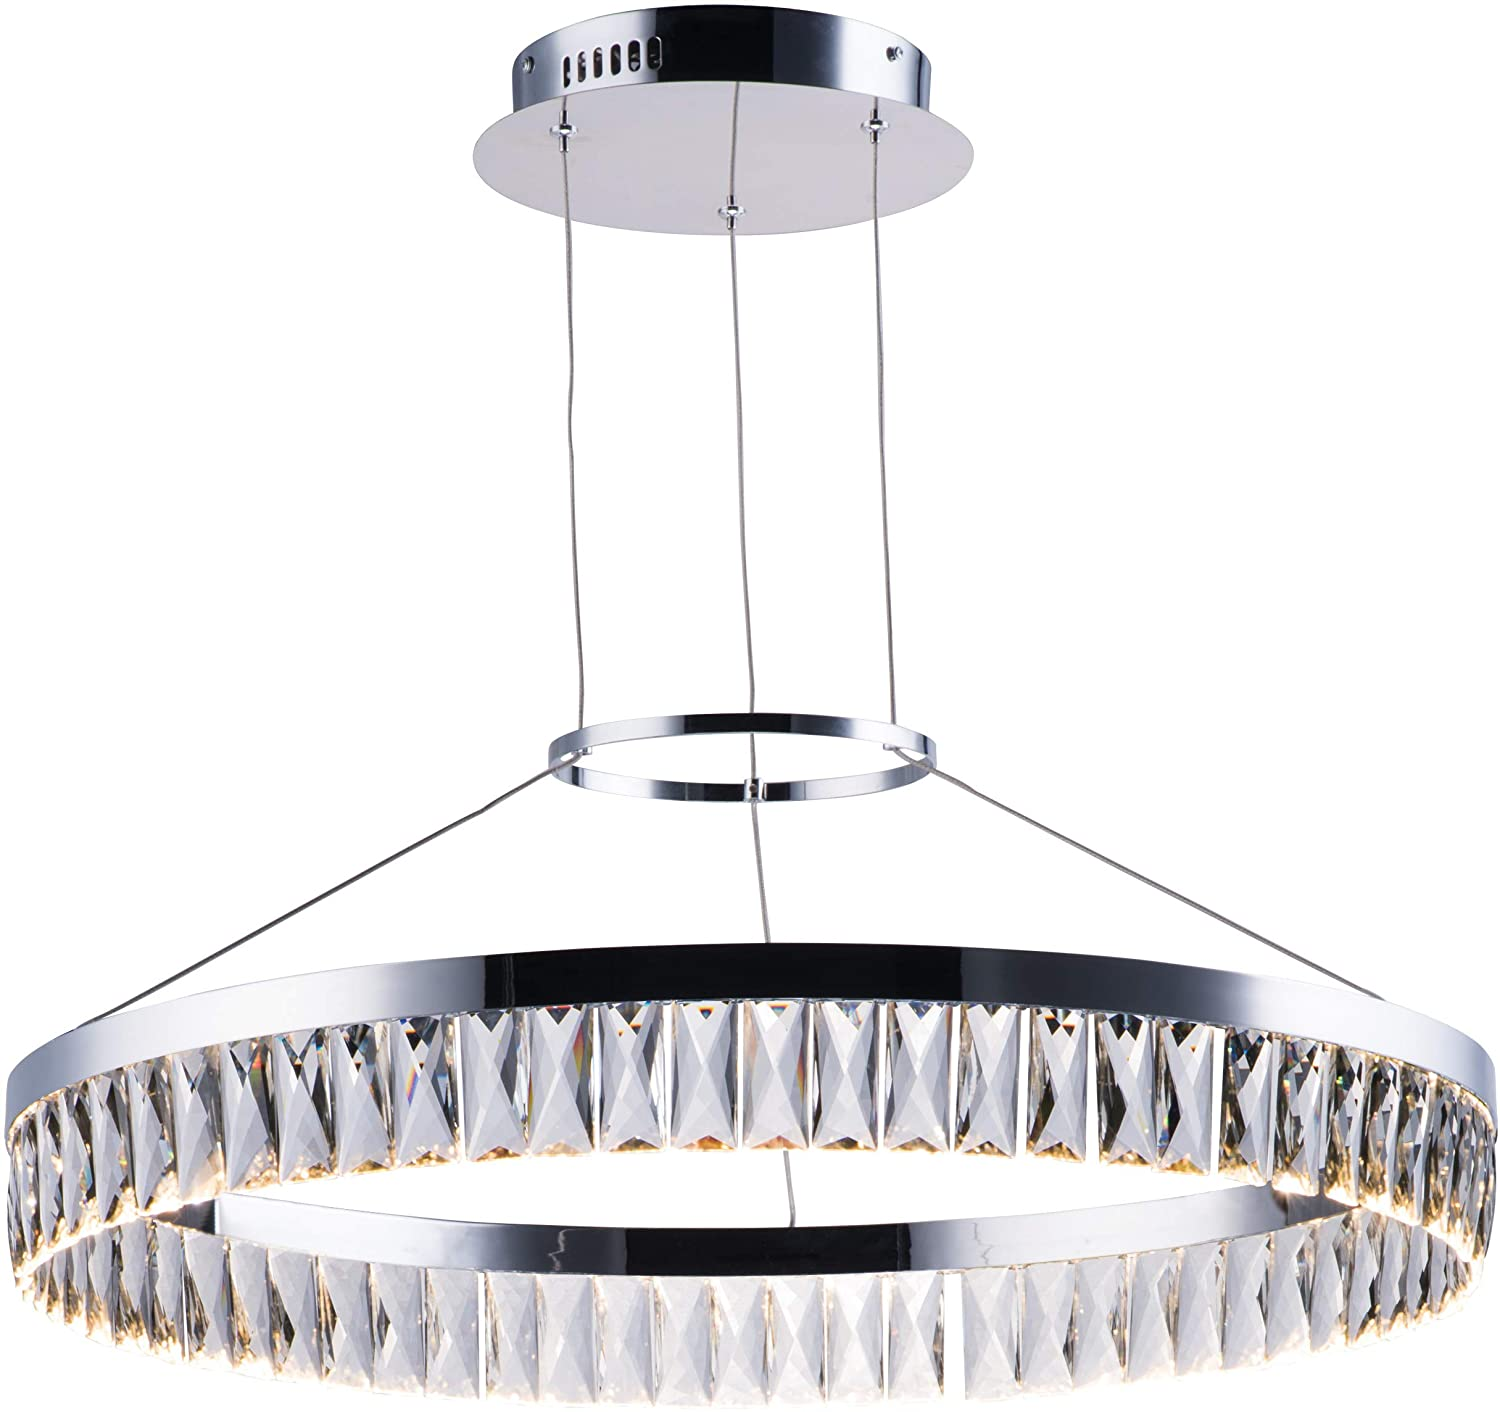 Amazon.com: Maxim Lighting 38375BCPC - Lámpara de techo con ...